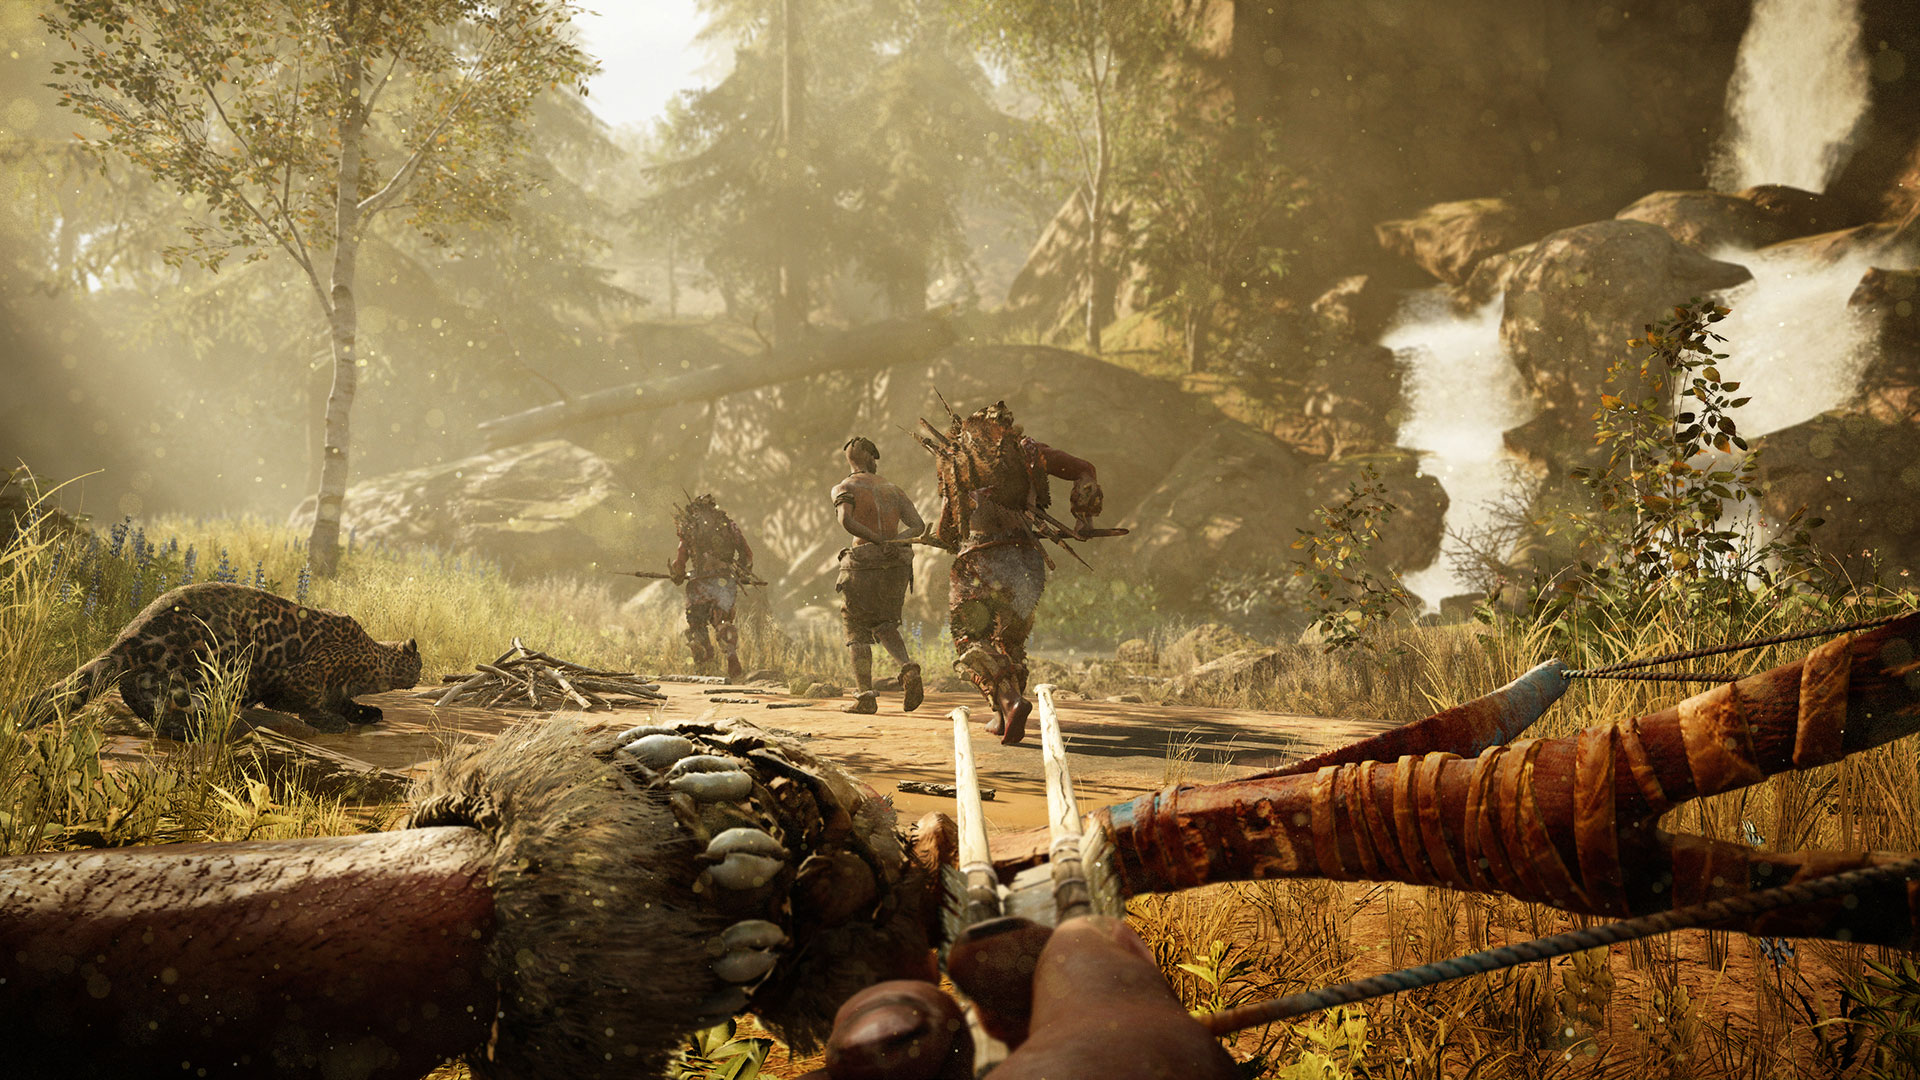 Far Cry Primal Artwork Video Games Wallpapers Hd: Far Cry Primal On Xbox One, PS4, & PC